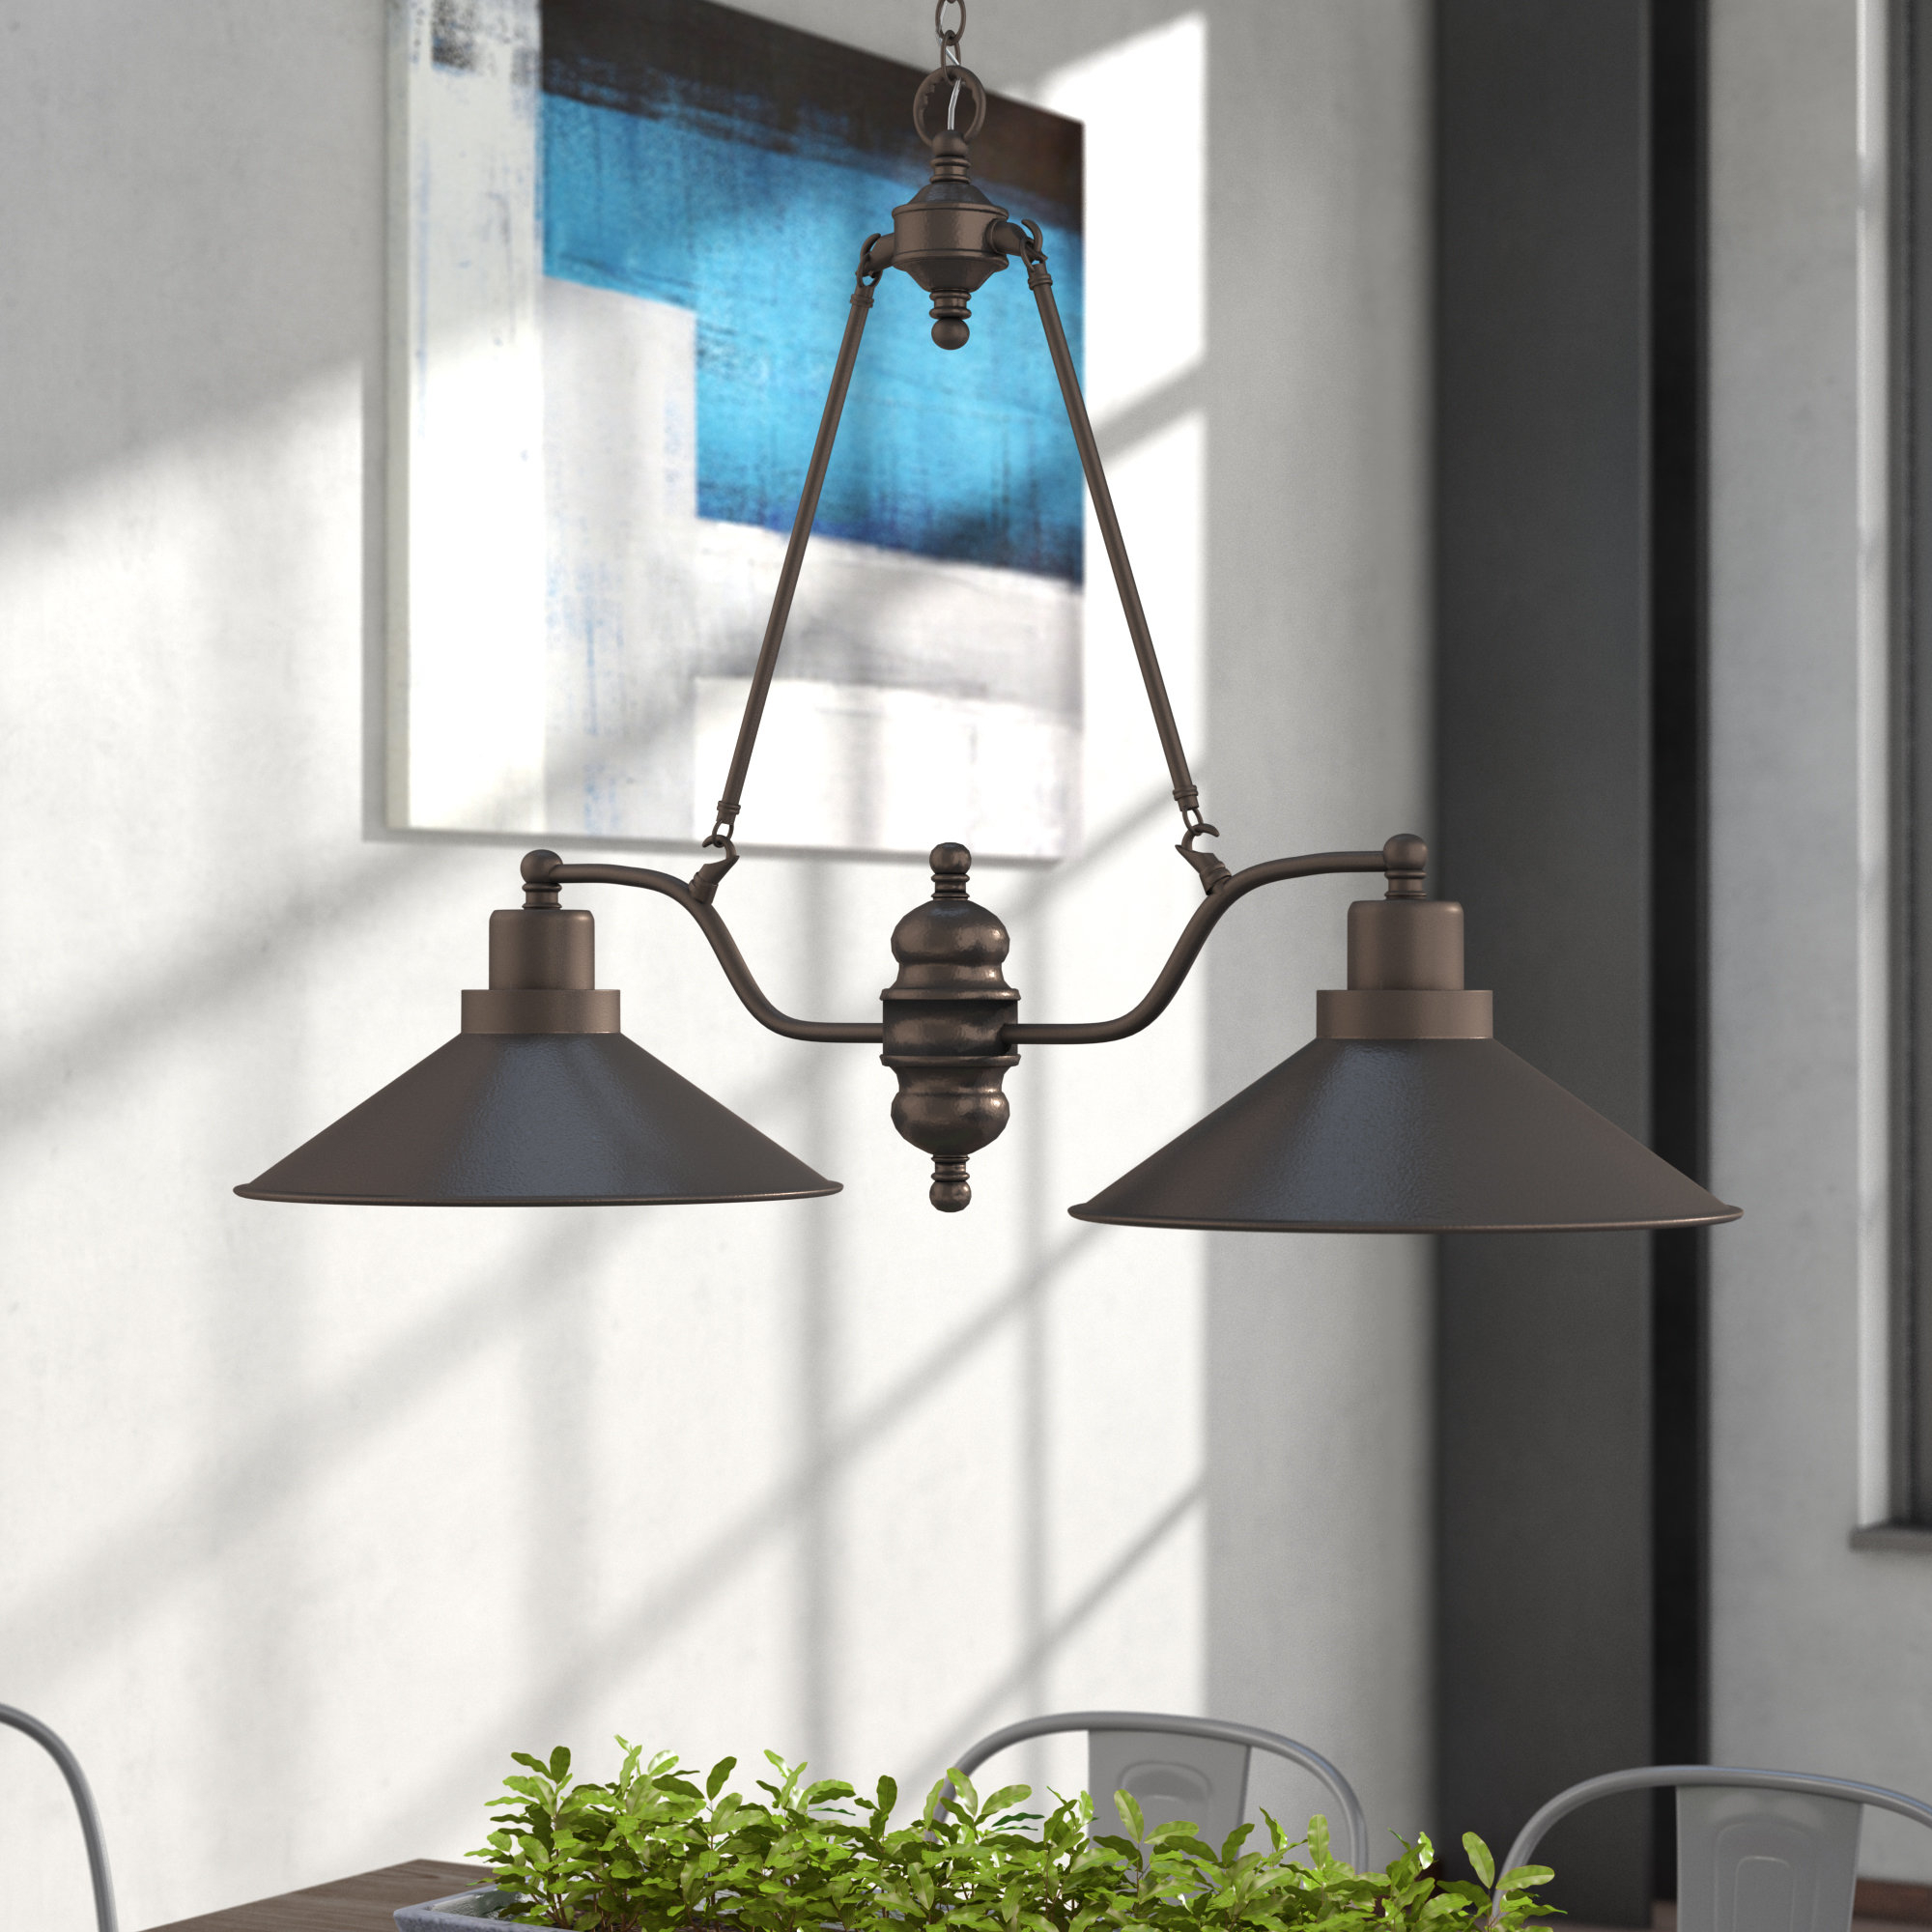 Schutt 5 Light Cluster Pendants Within Latest Industrial Pendant Lights You'll Love In  (View 16 of 20)